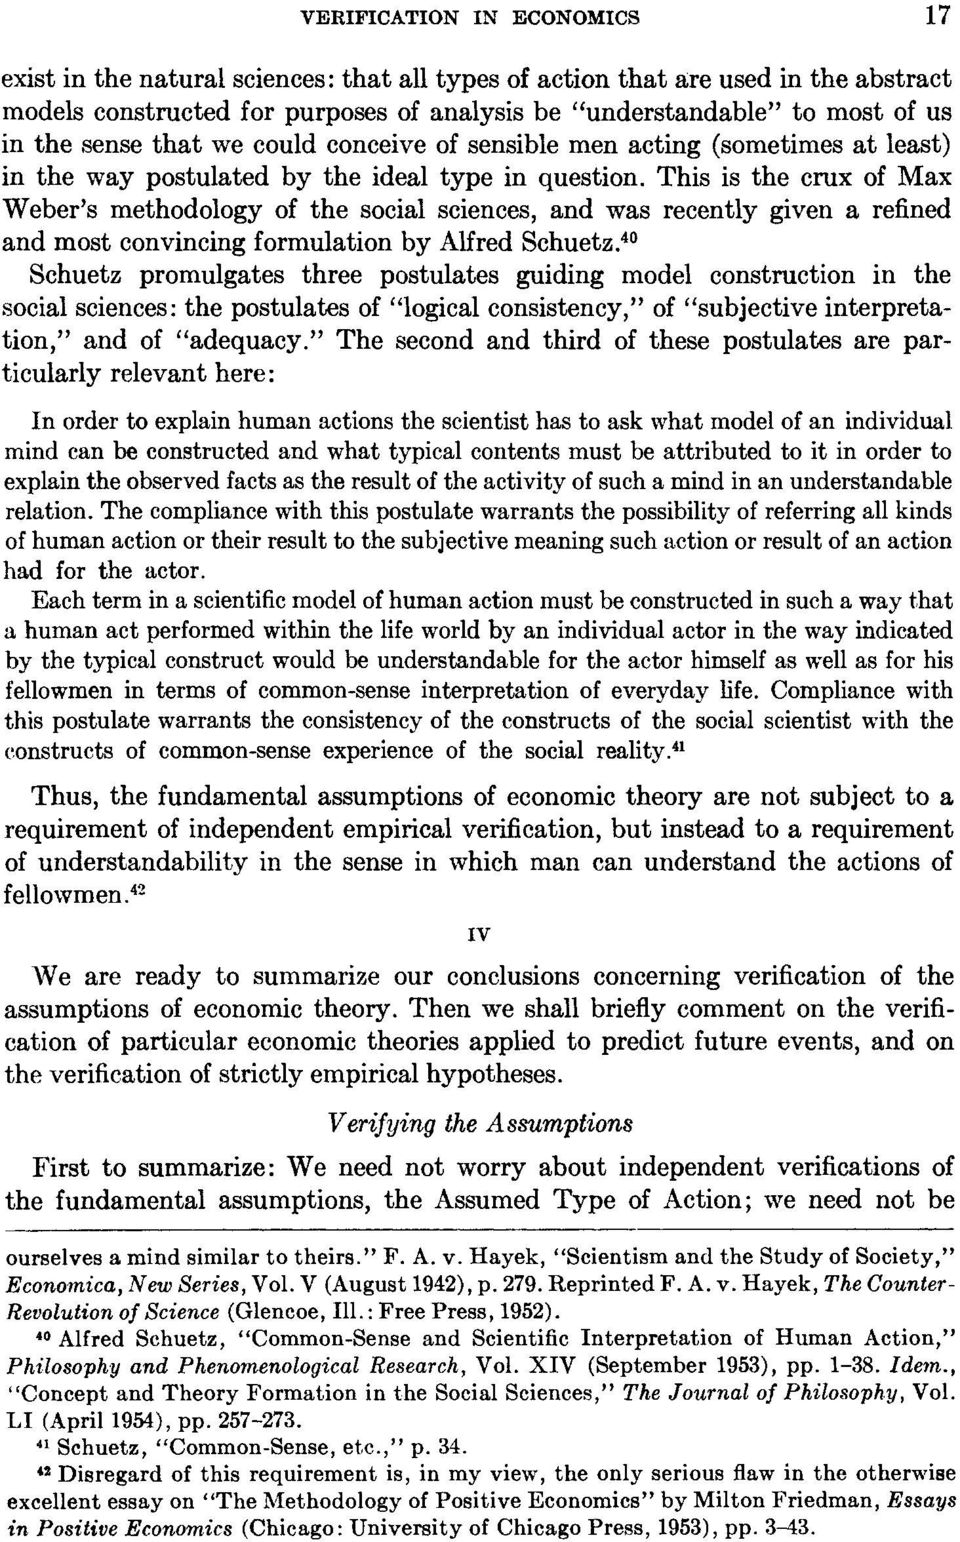 This is the crux of Max Weber's methodology of the social sciences, and was recently given a refined and most convincing formulation by Alfred Schuetz.